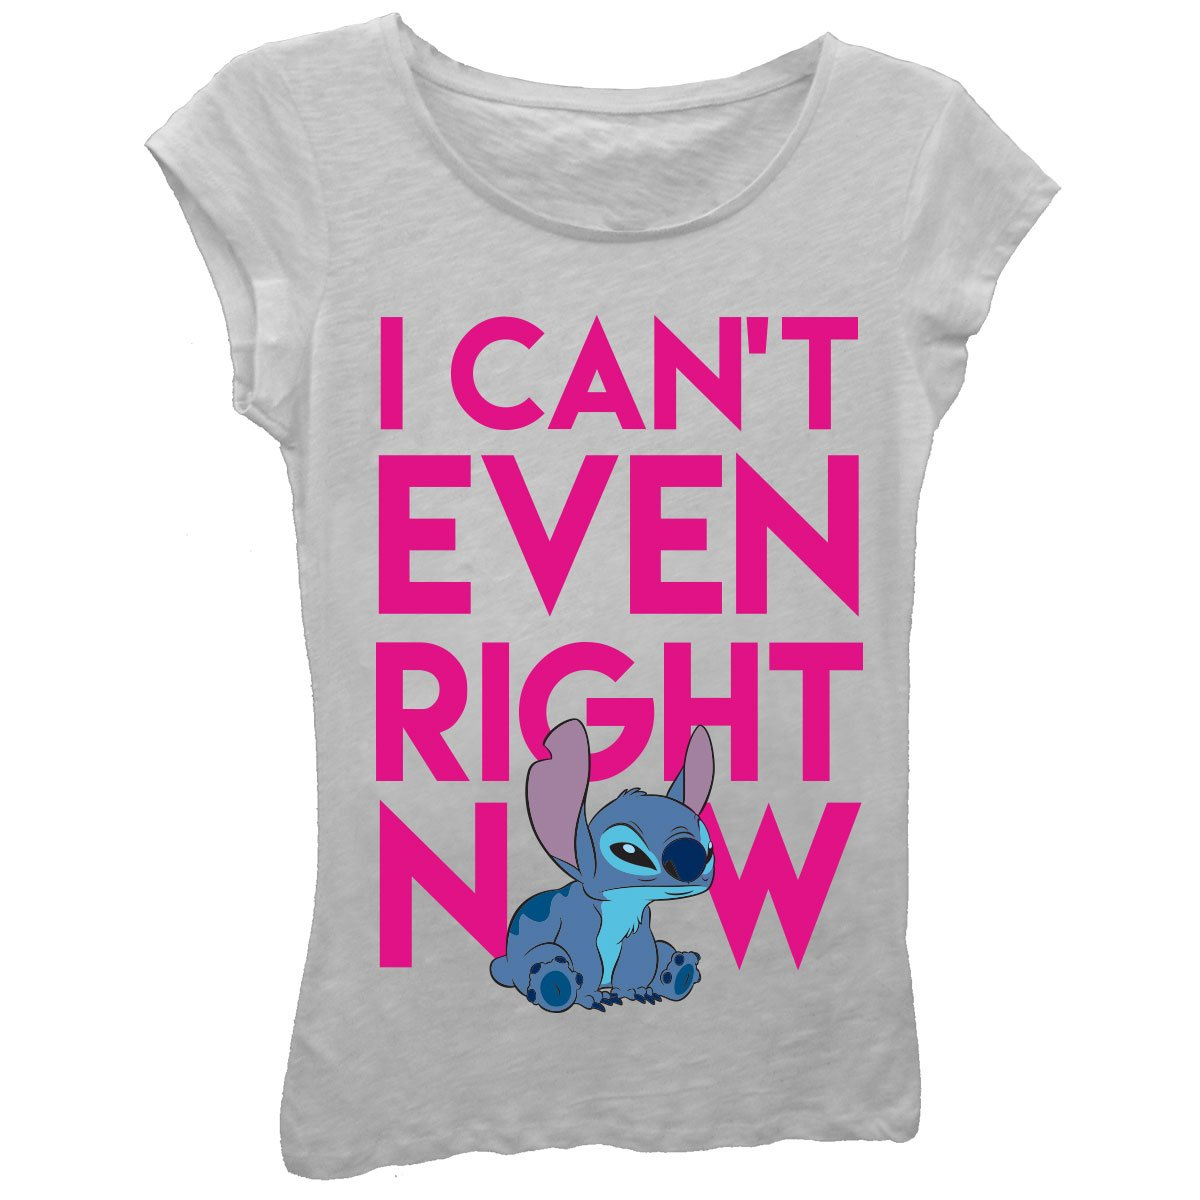 b45165dca Top10: Star Wars Girls\' Lilo and Stitch I Can\'t Even Right Now Short  Sleeve T-Shirt